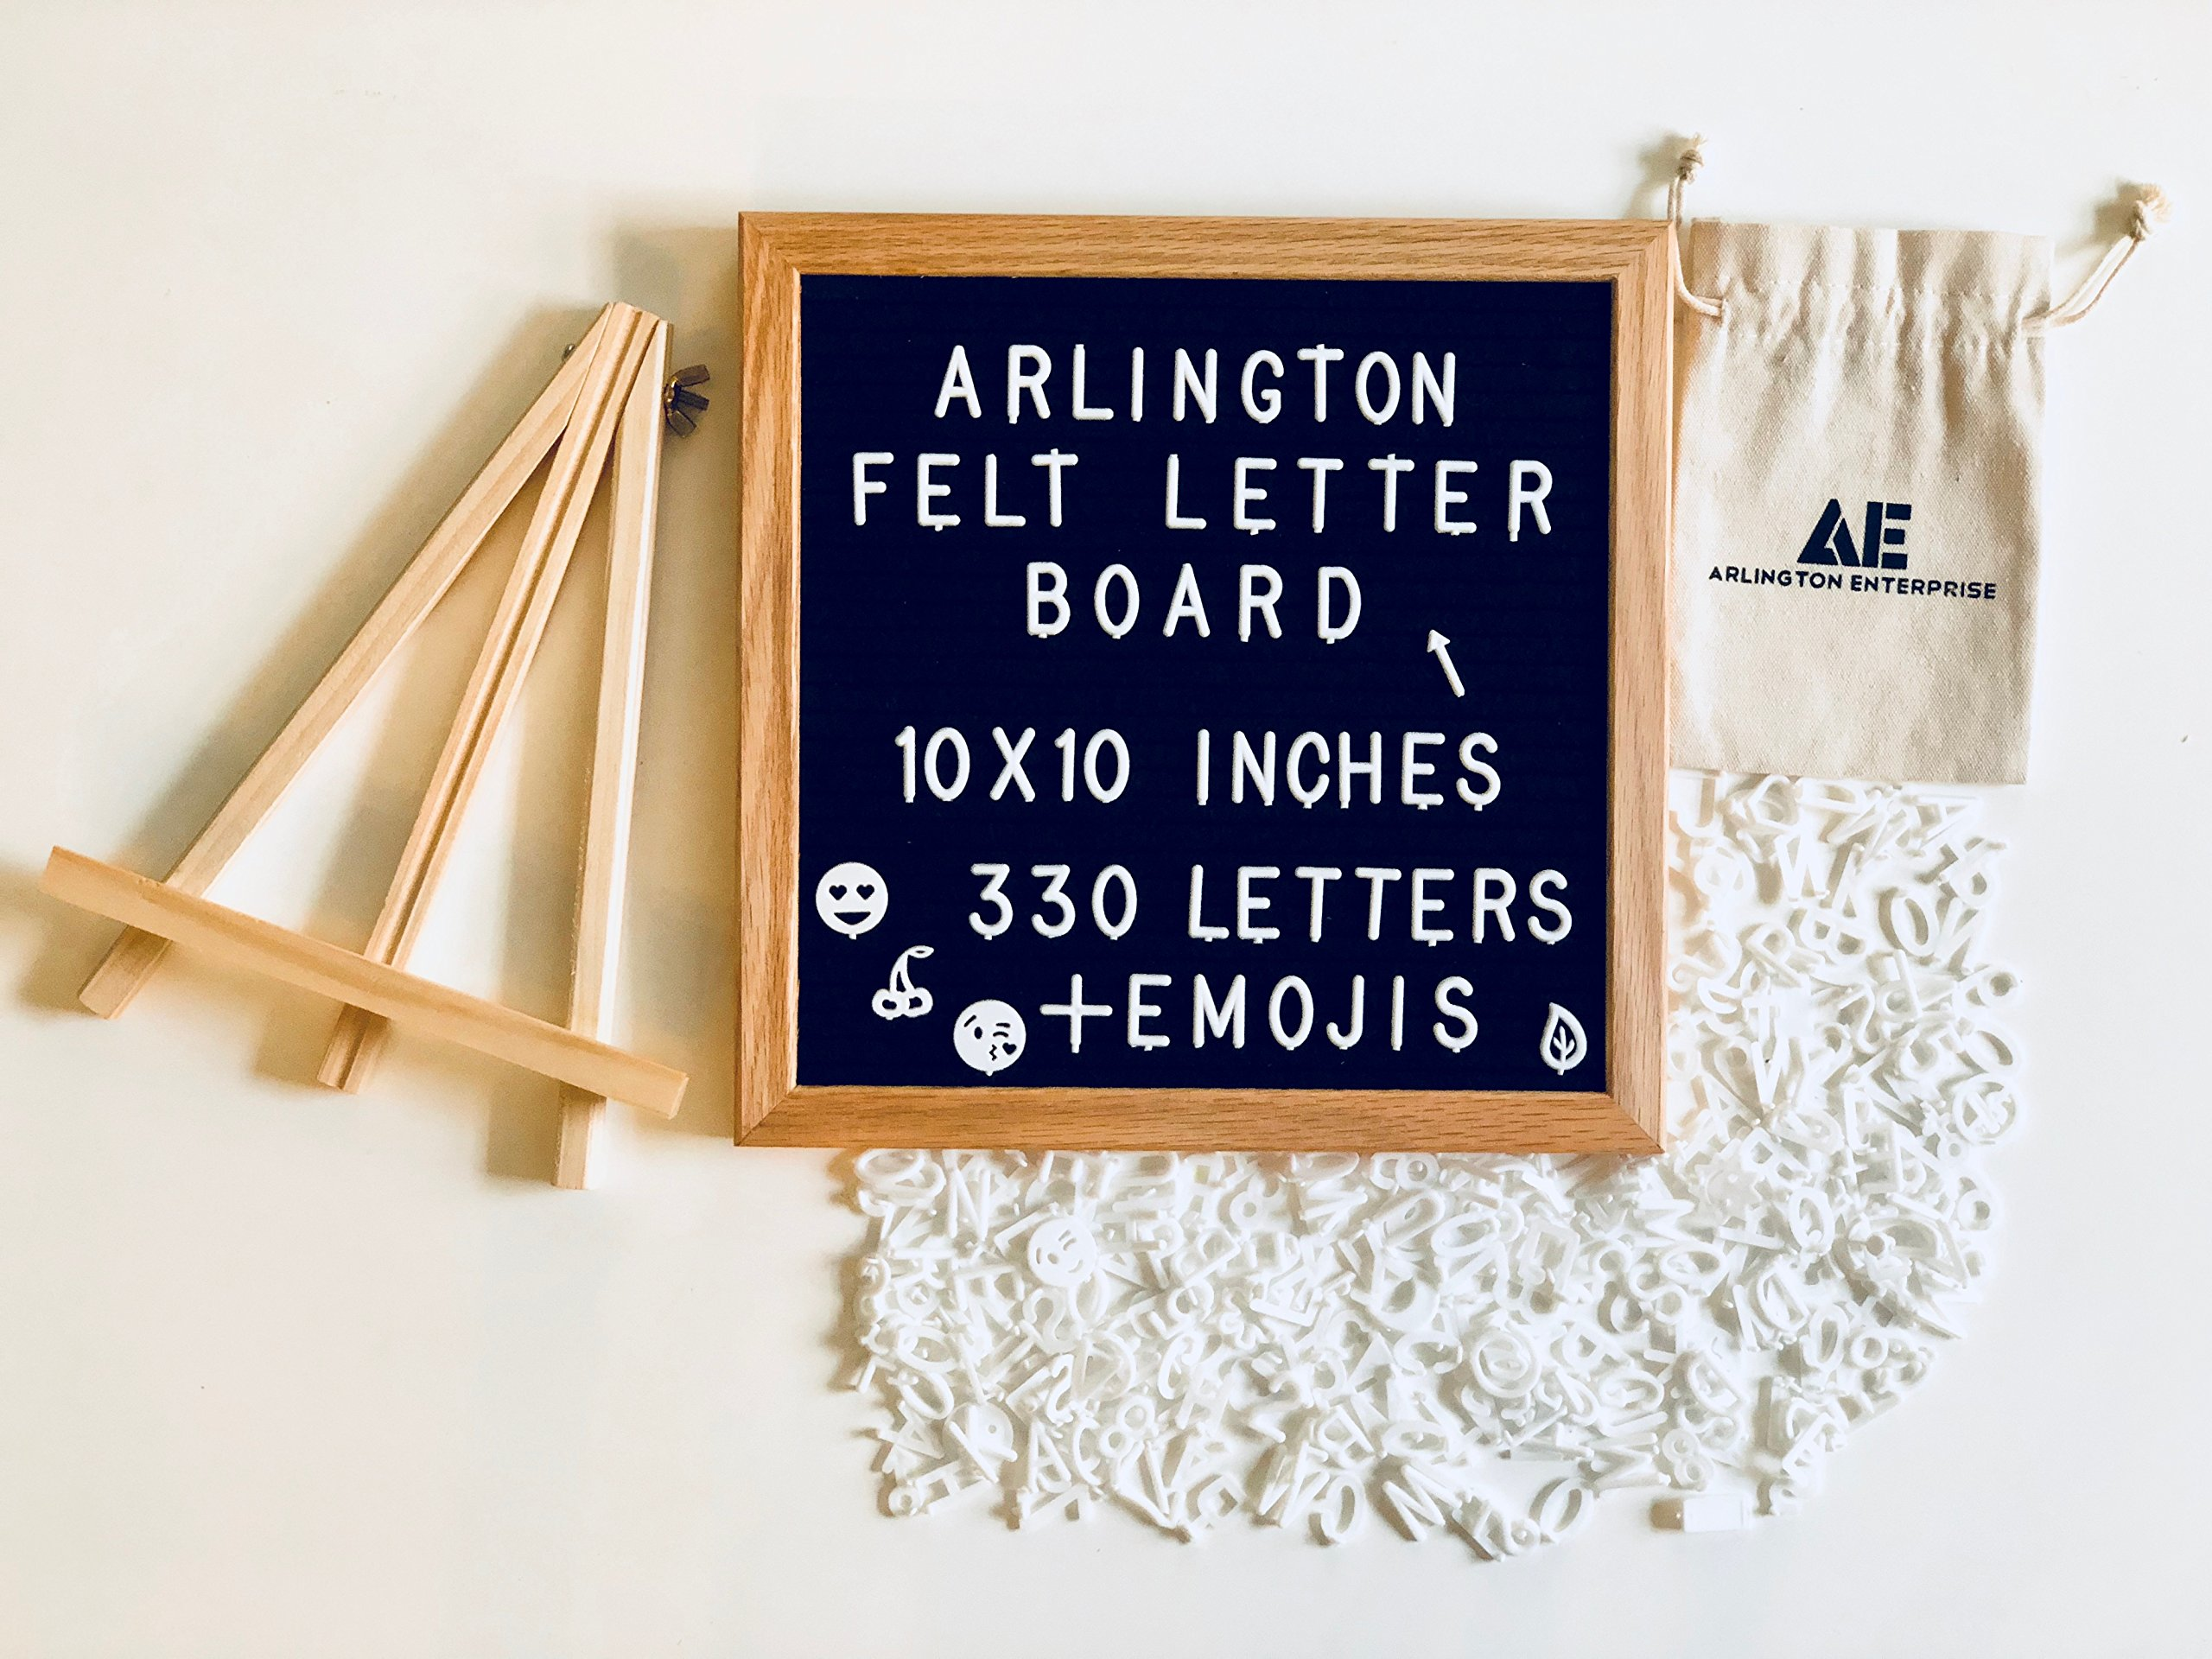 Felt Letter Board with 295 White Detachable Letters + 35 Emojis Framed in a Rustic 10x10 inches Oak Wood. Comes with: Free Oak Tripod Stand, Scissors, and Canvas Bag.